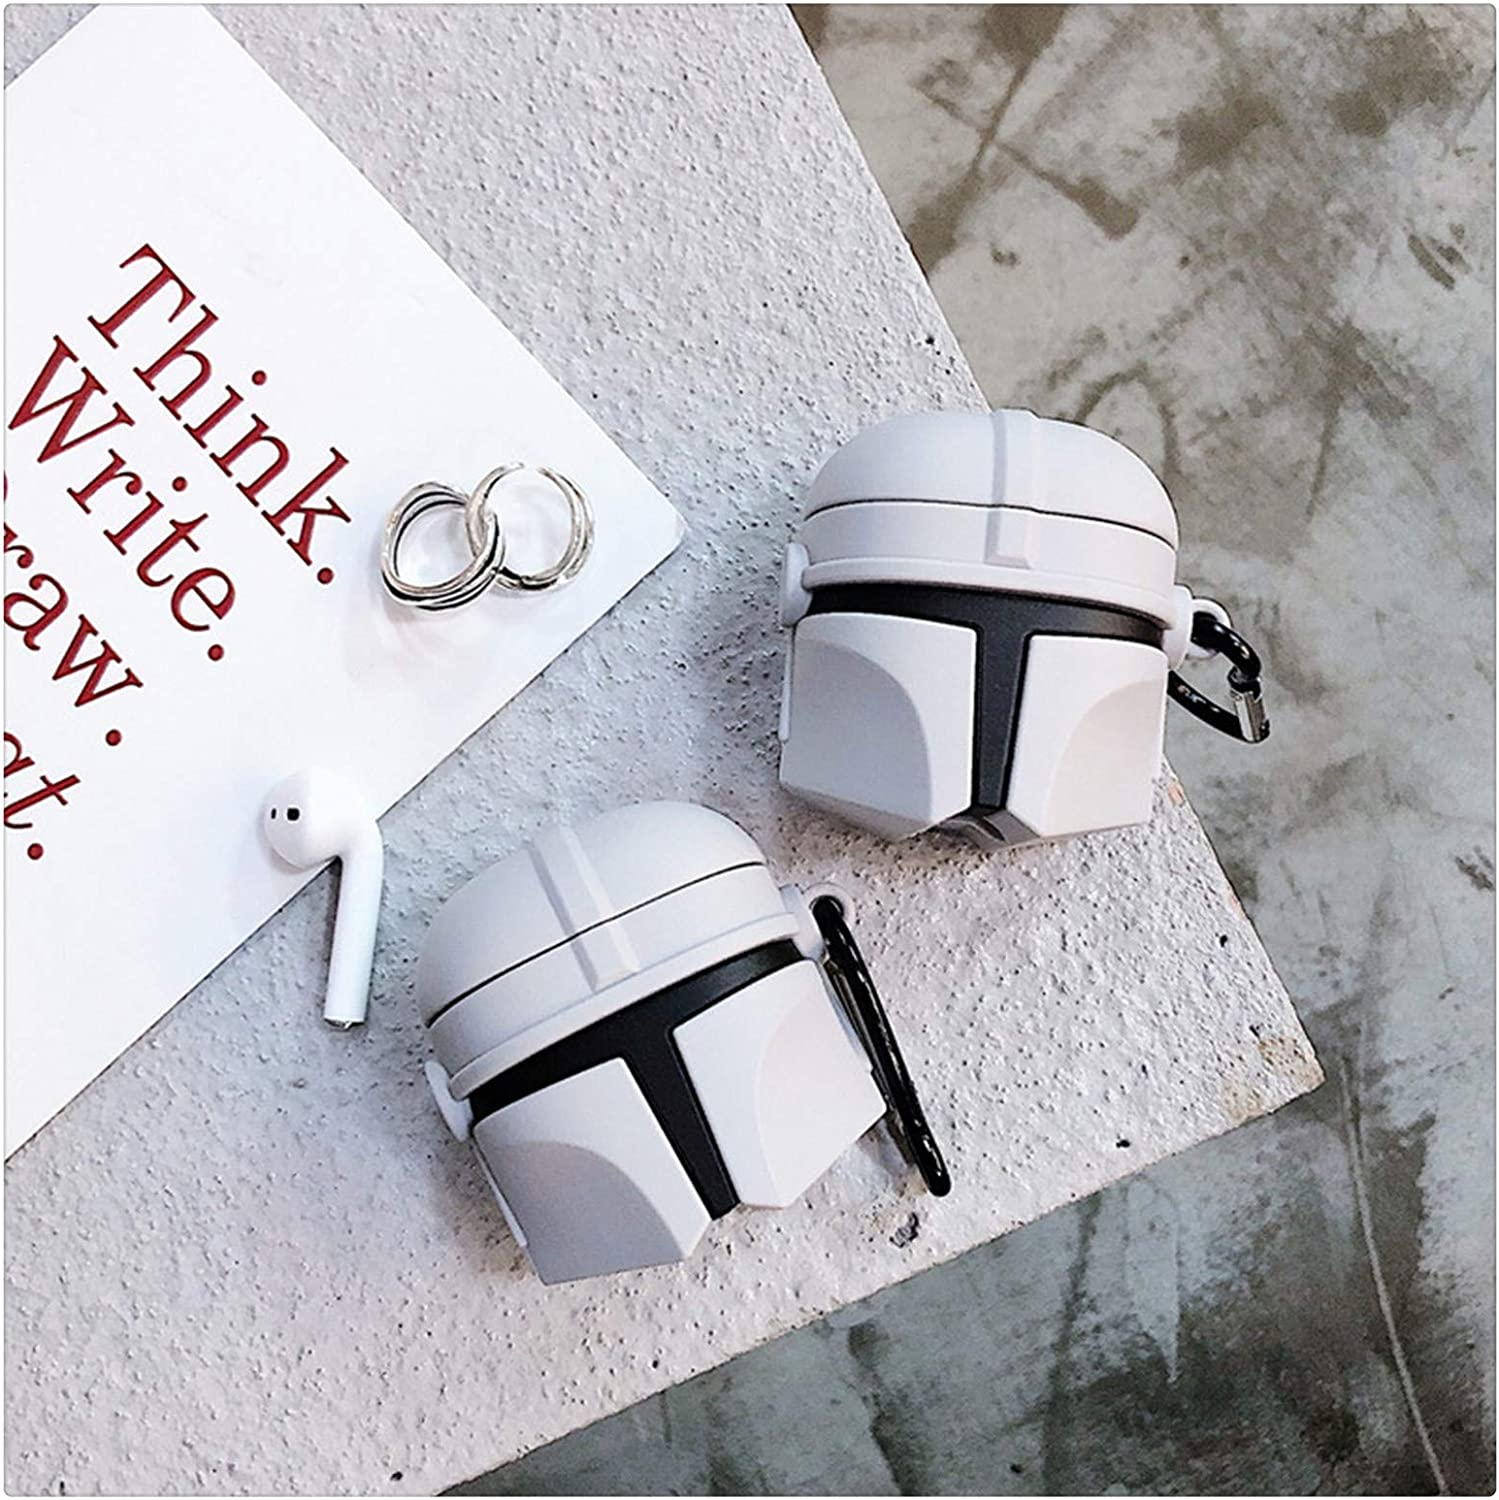 Star Wars Airpods Cover